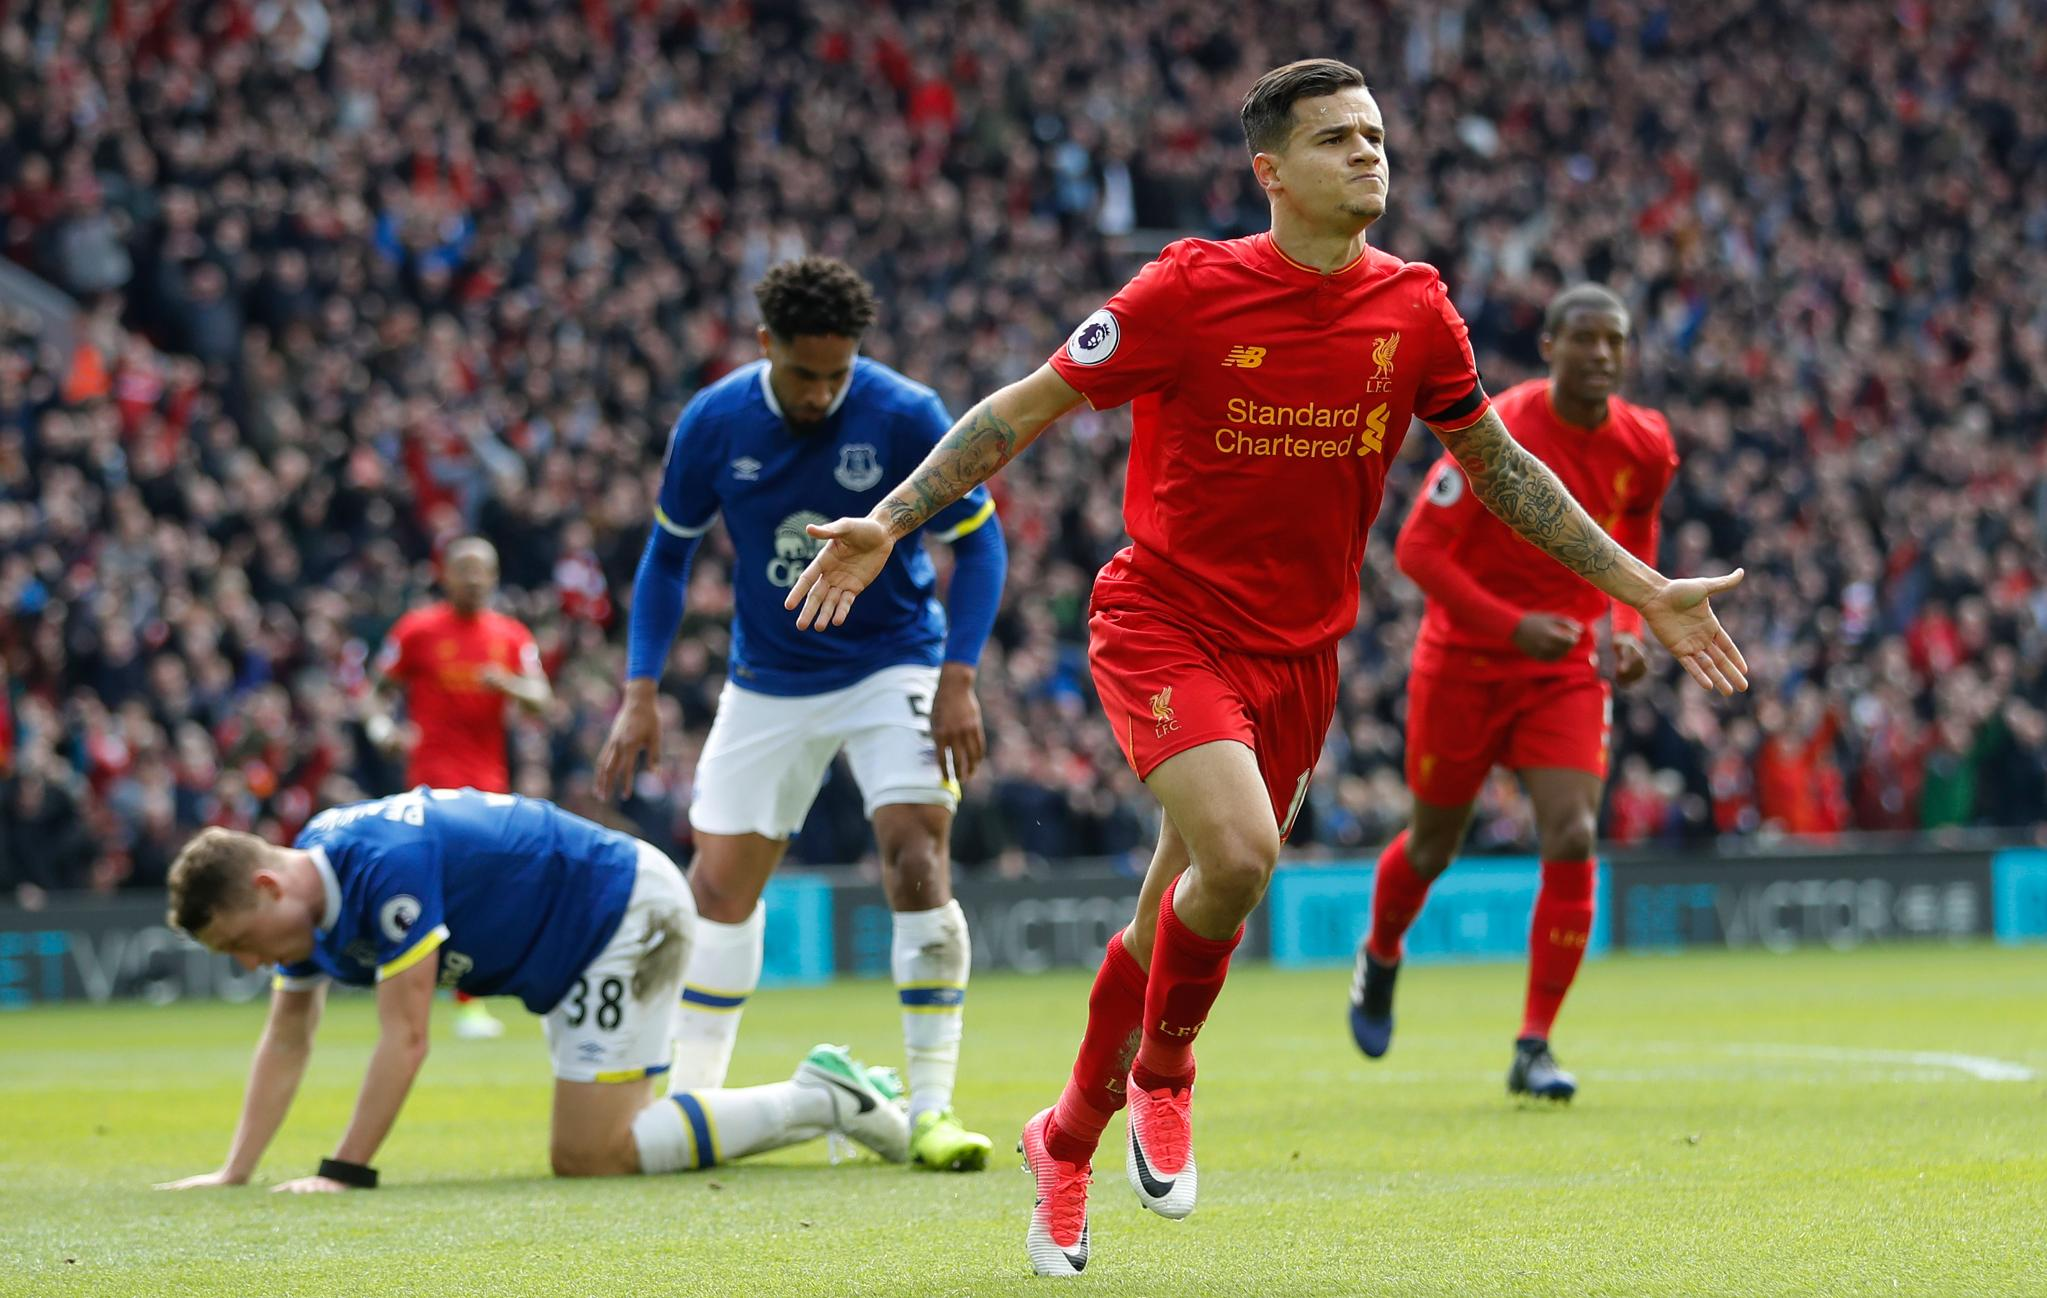 Liverpool Ease Past Everton As Injured Moses Misses Chelsea Vs Palace